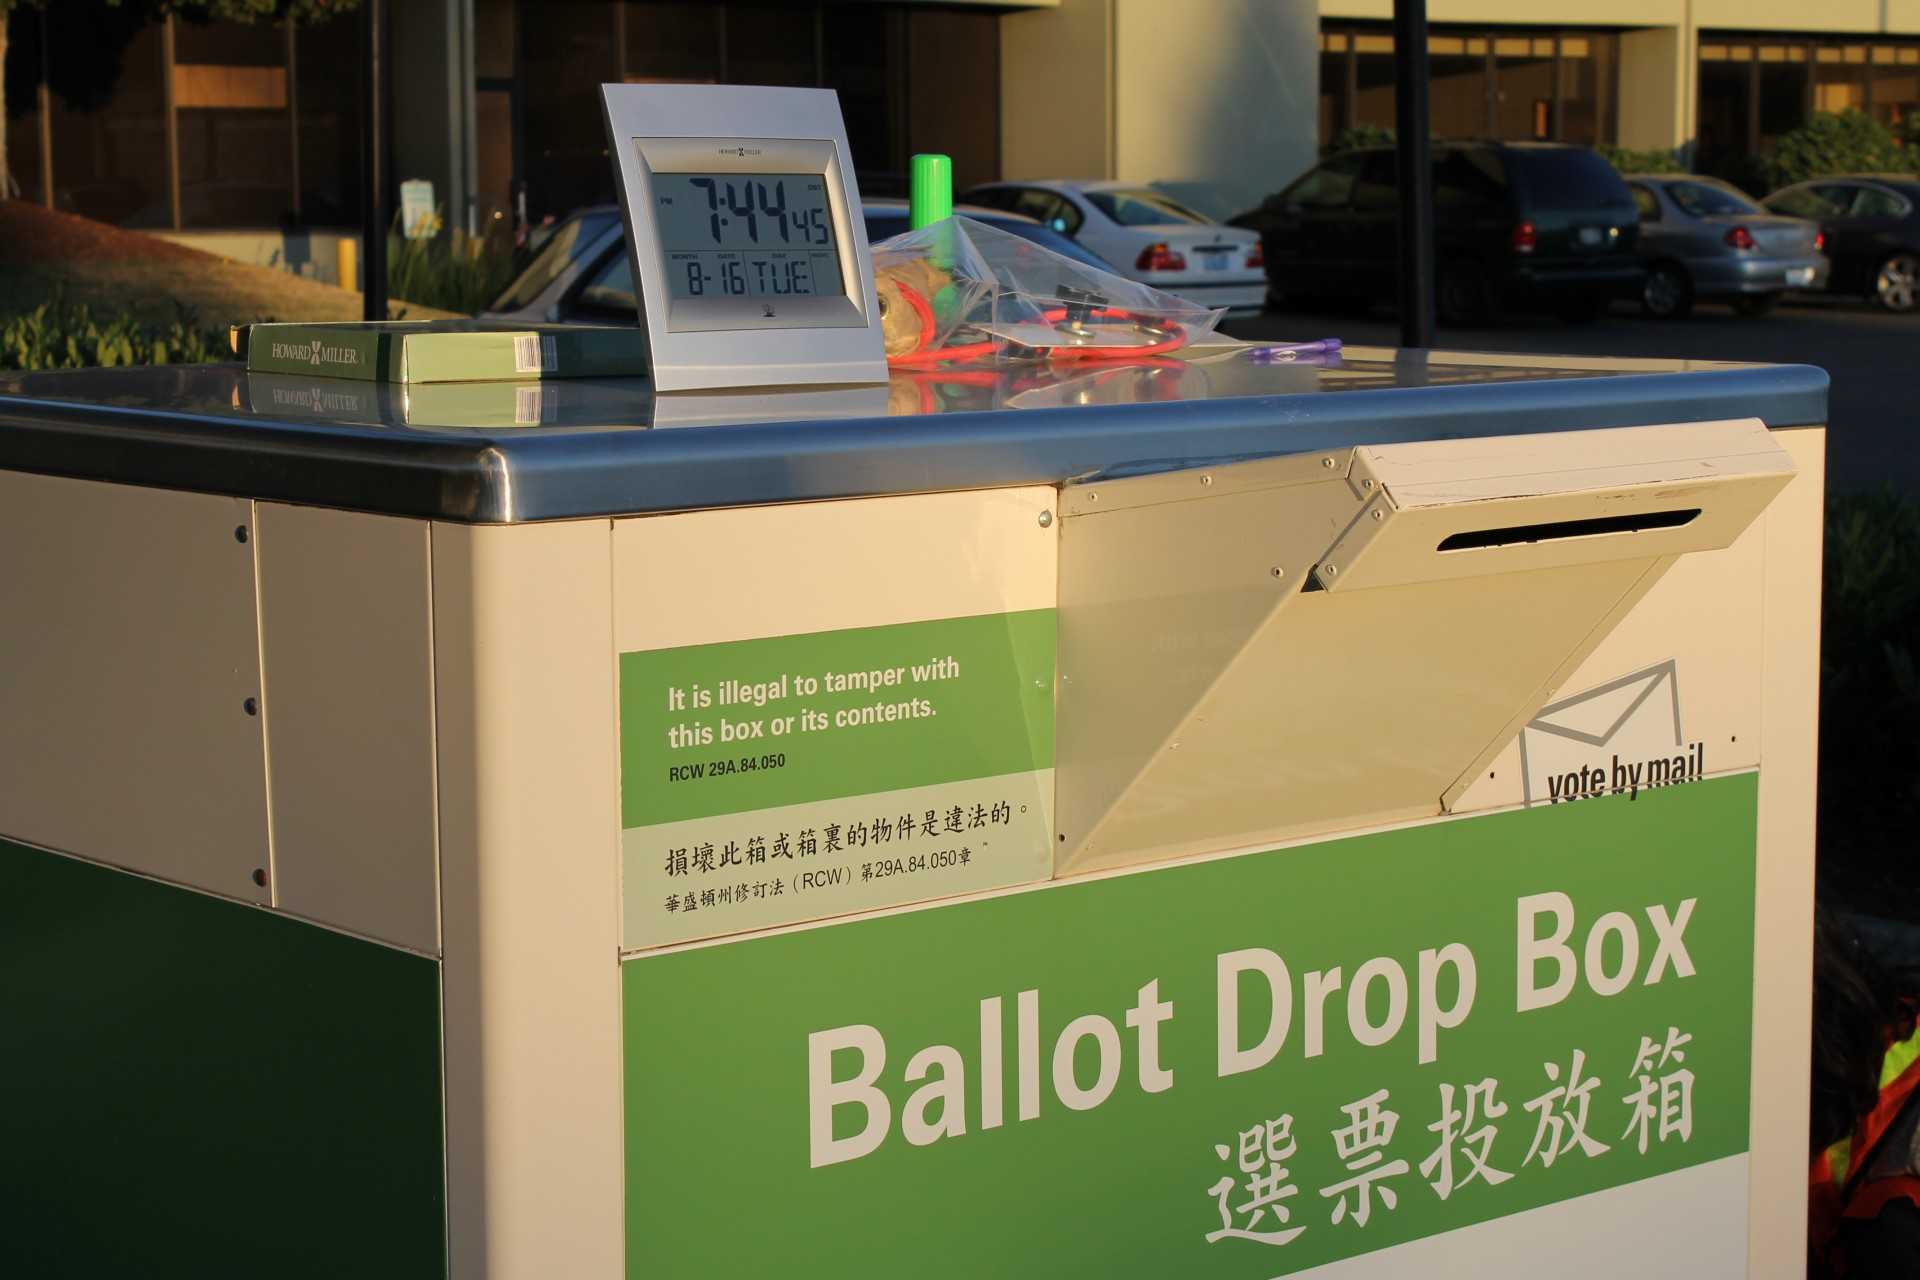 Remember to drop-off your Seattle ballot in a box like this!